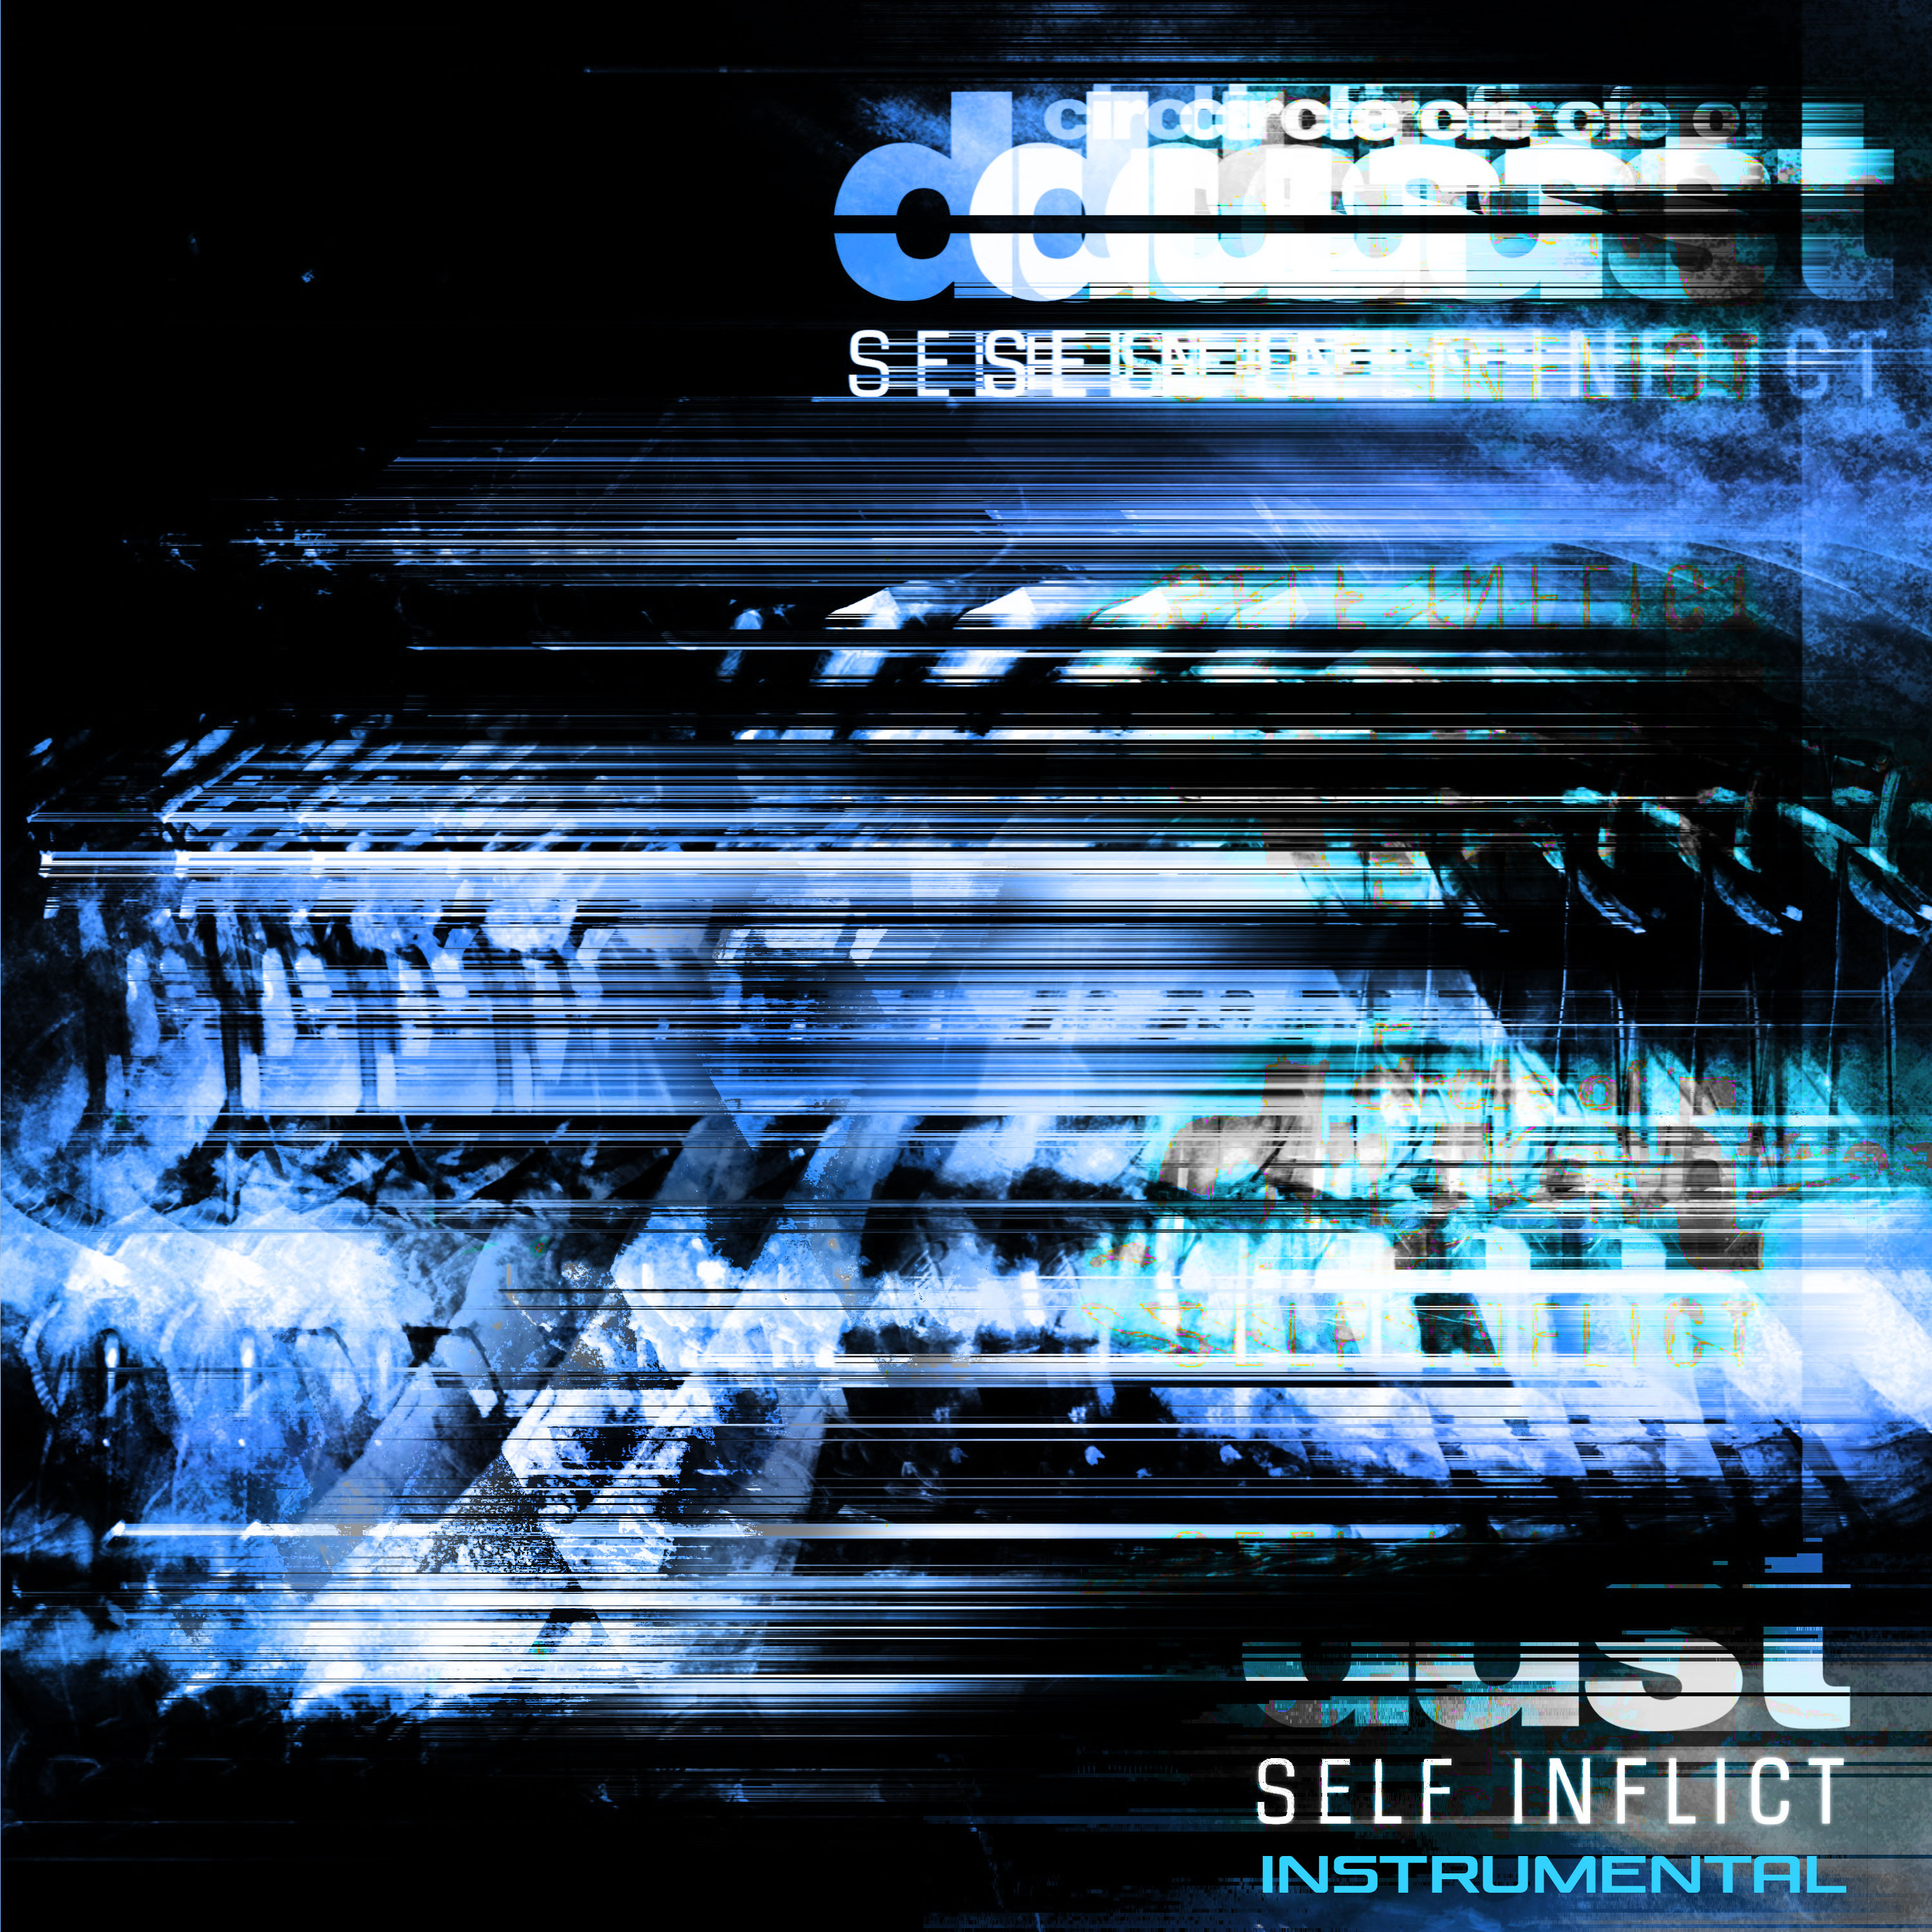 Circle of Dust - Self Inflict (25th Anniversary Mix) [Instrumental] [Single] Image